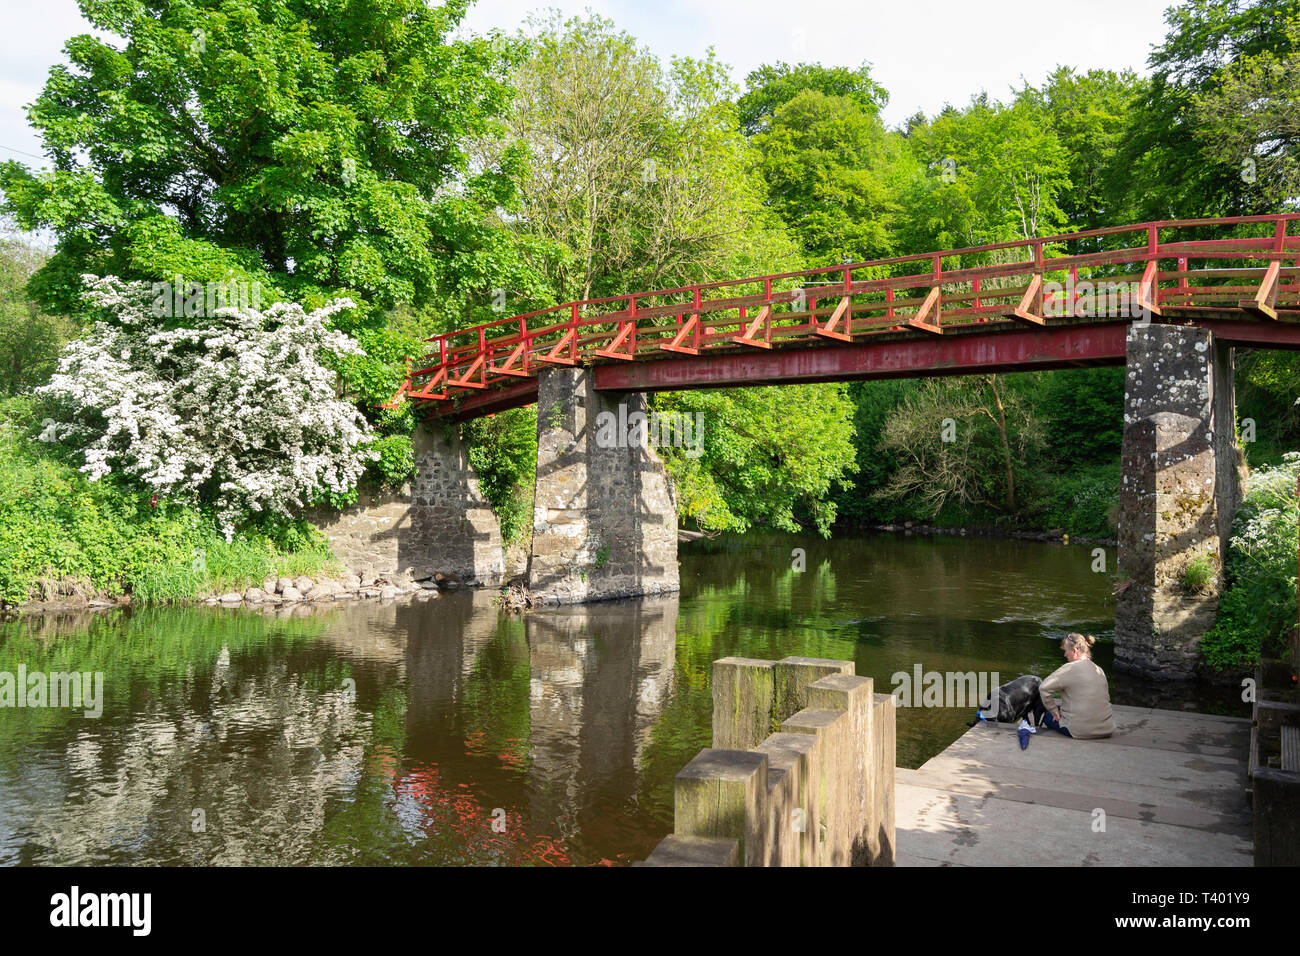 The Red Bridge spans the lagan beside a restored lock. - Stock Image